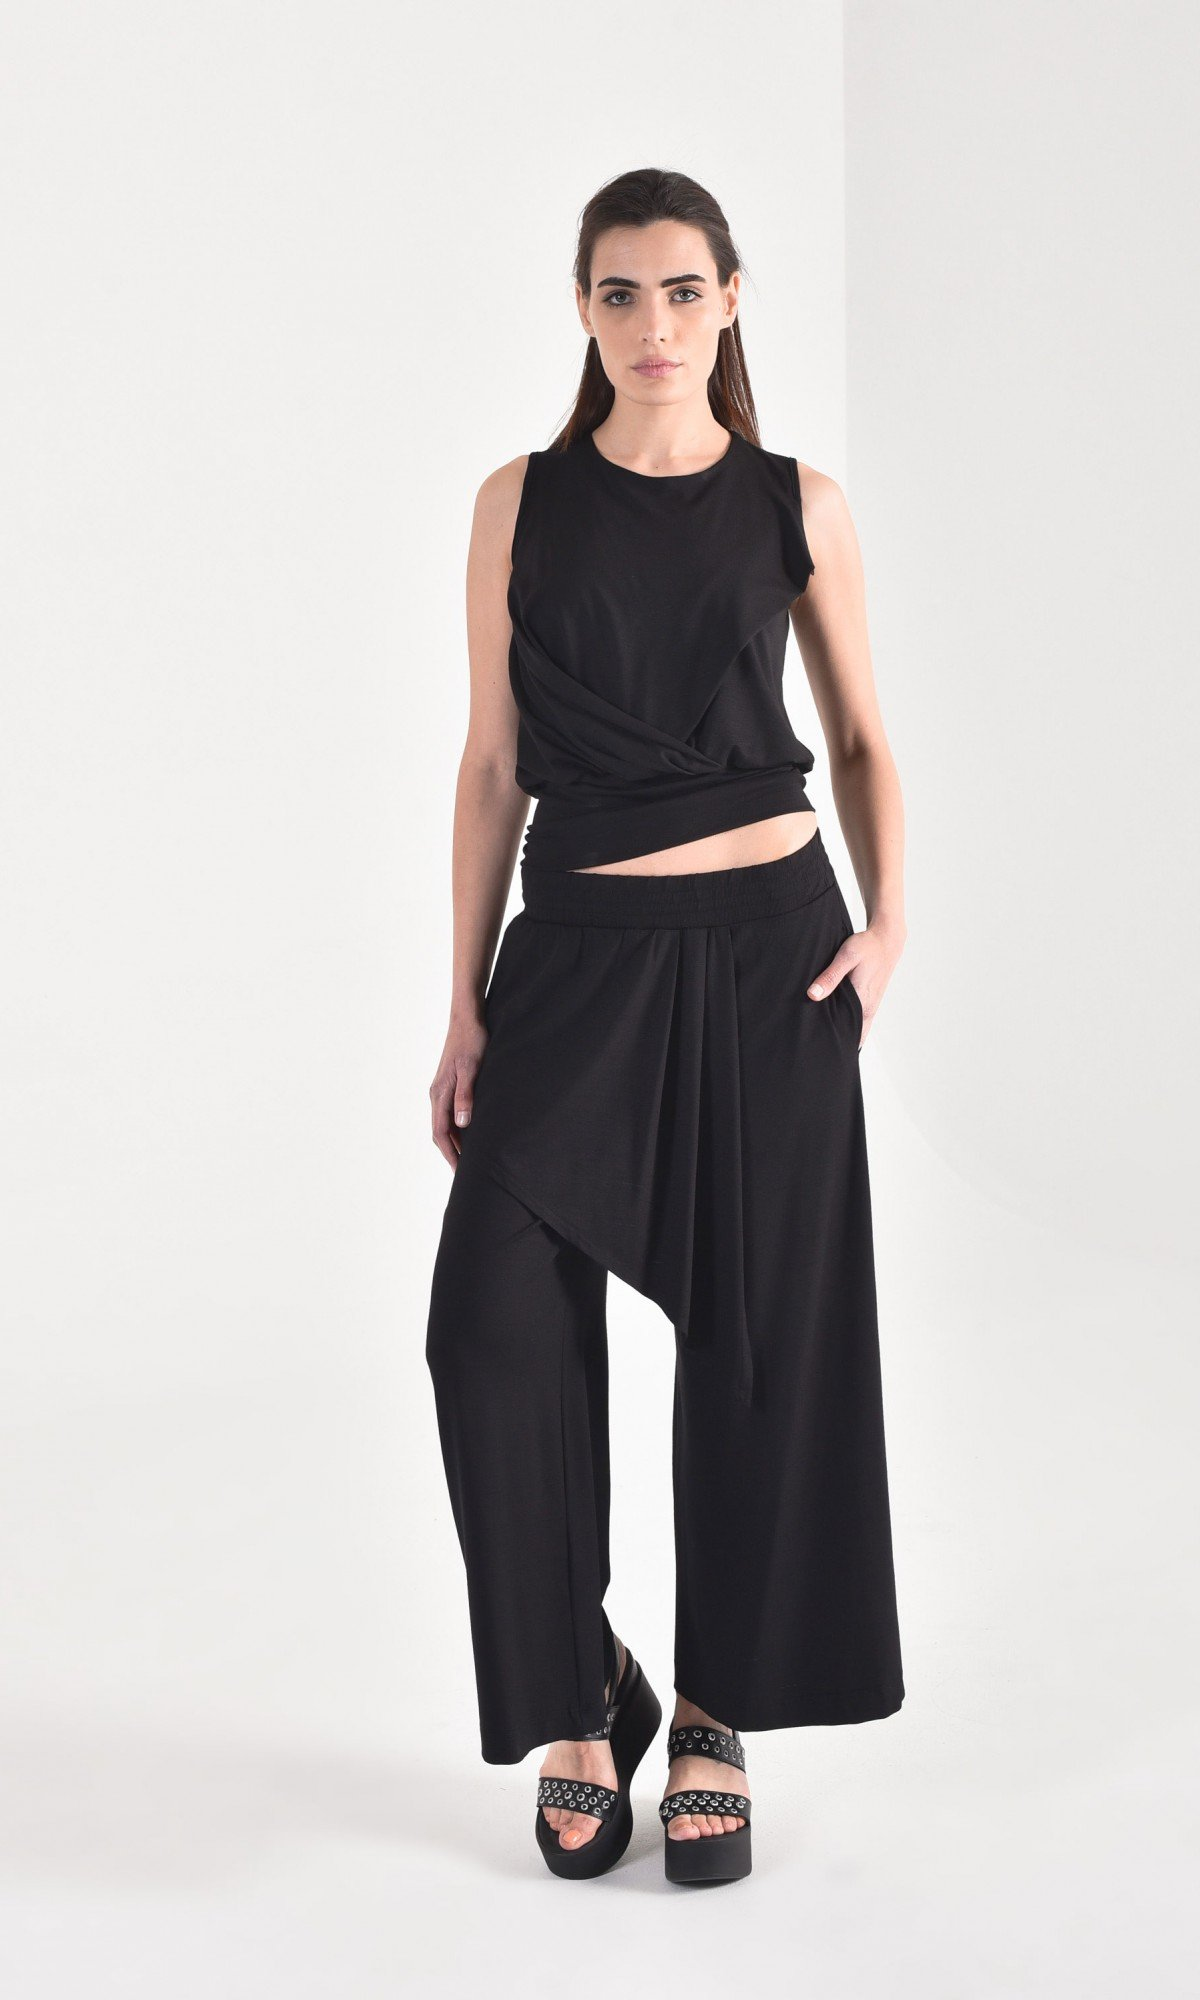 Stylish Wide Leg Asymmetric Pants A90462